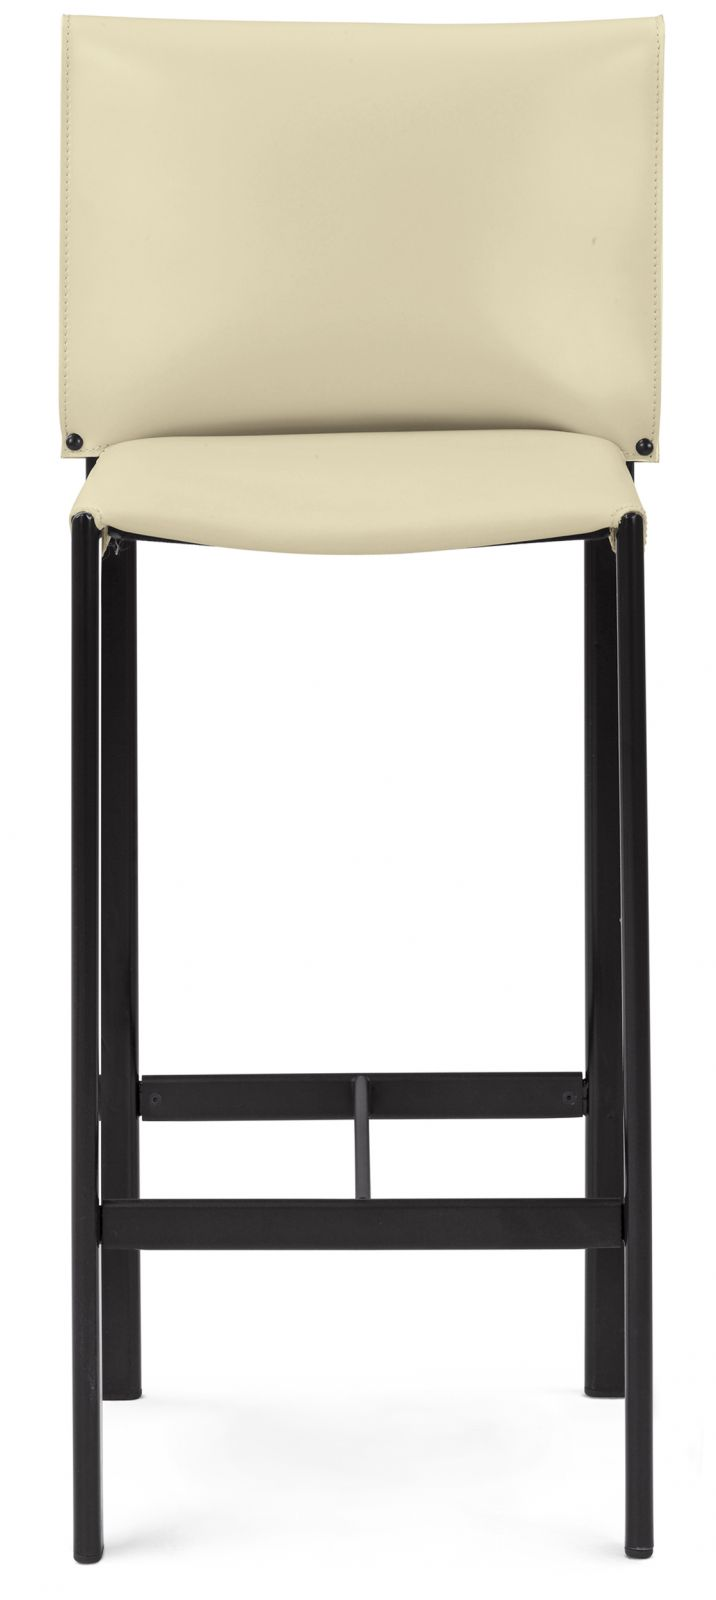 modern-bar-stools-Italian-furniture-large (40).jpg